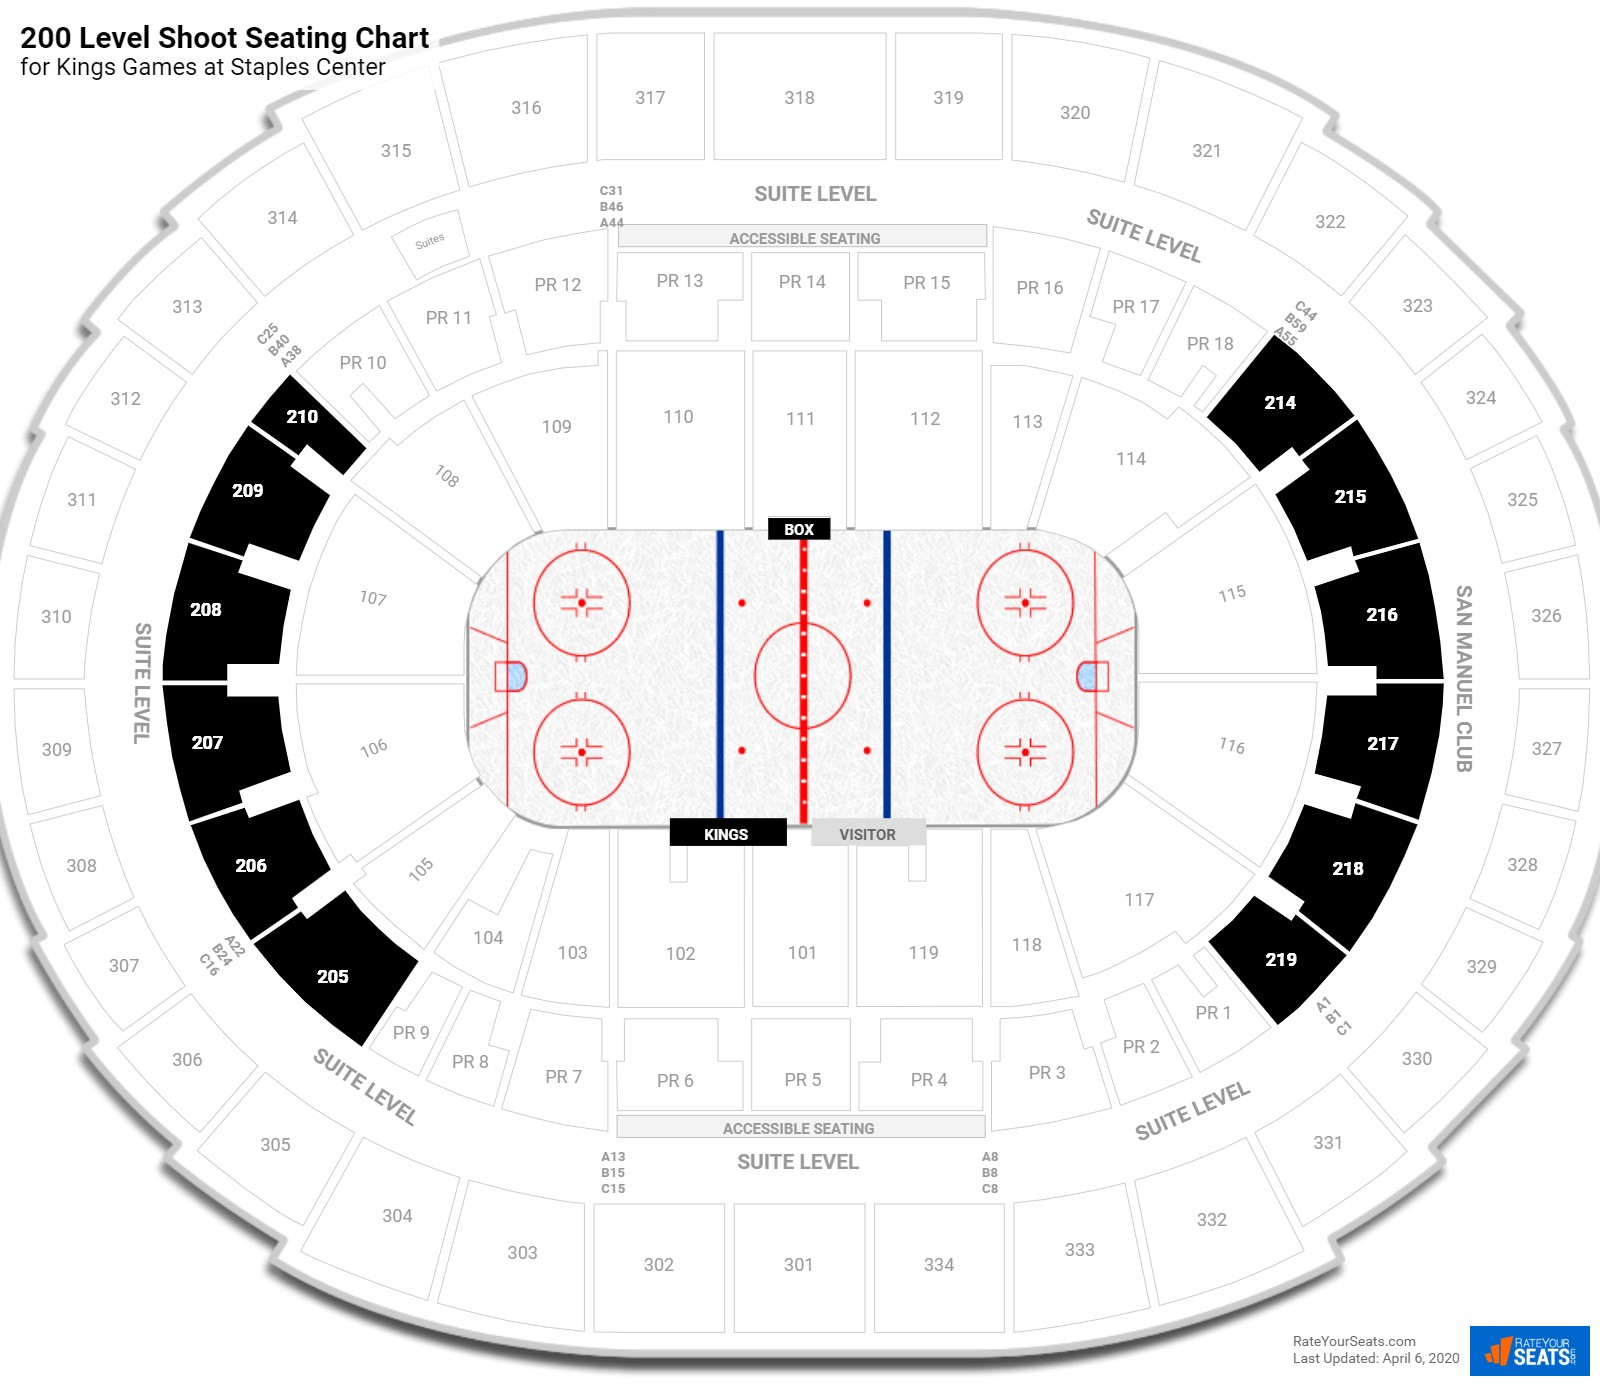 Staples Center 200 Level Behind the Net seating chart